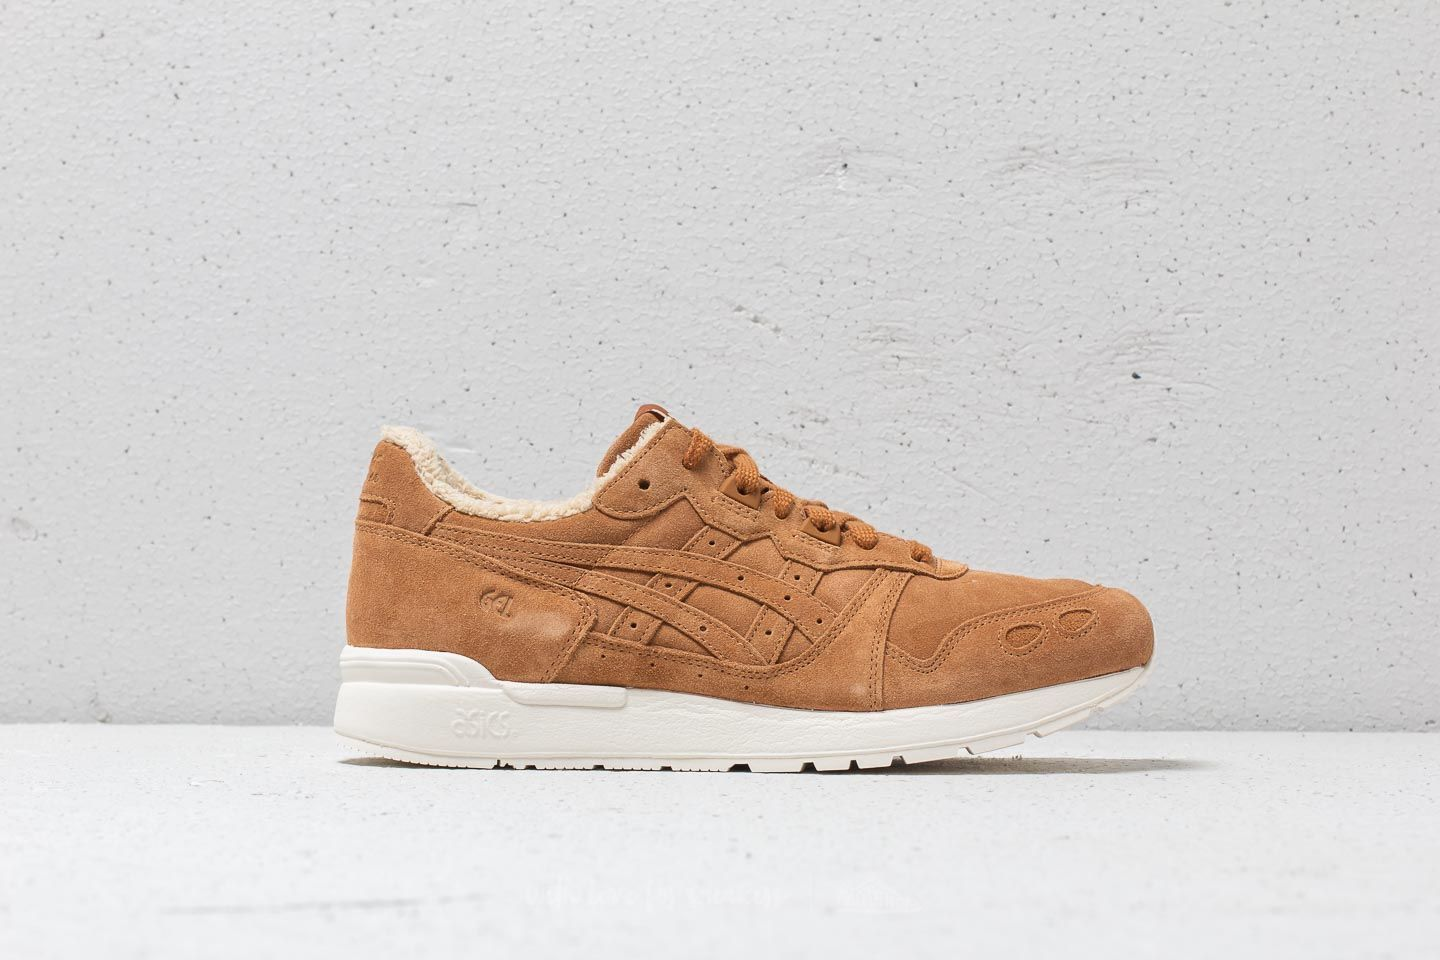 5f19380f1085 Asics Gel-Lyte Caramel  Caramel at a great price 74 € buy at Footshop